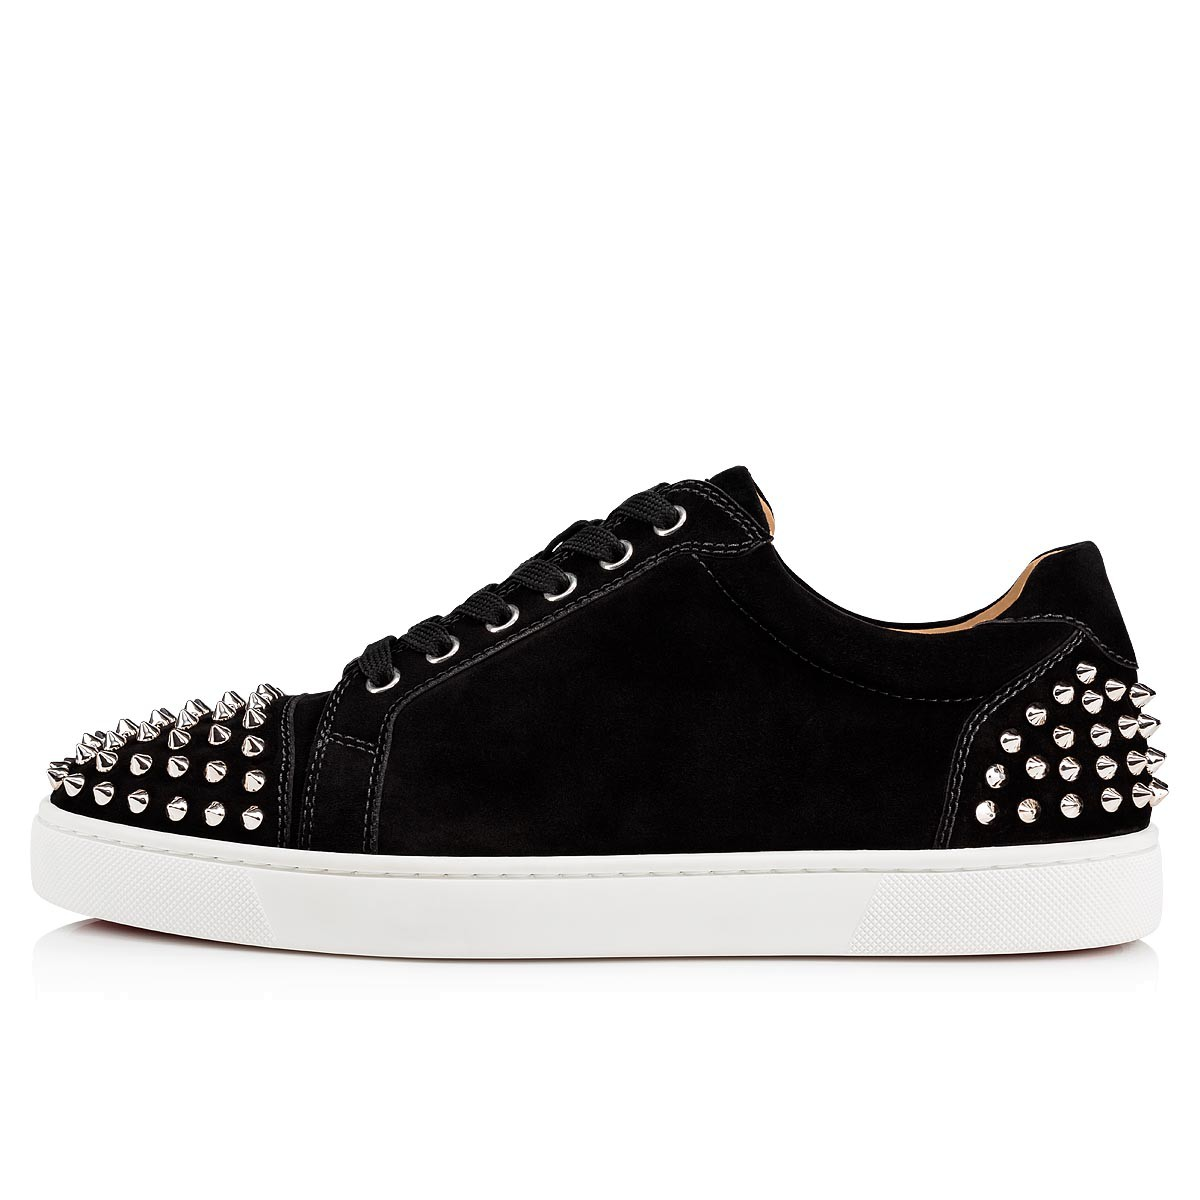 Shoes - Seavaste 2 Flat - Christian Louboutin